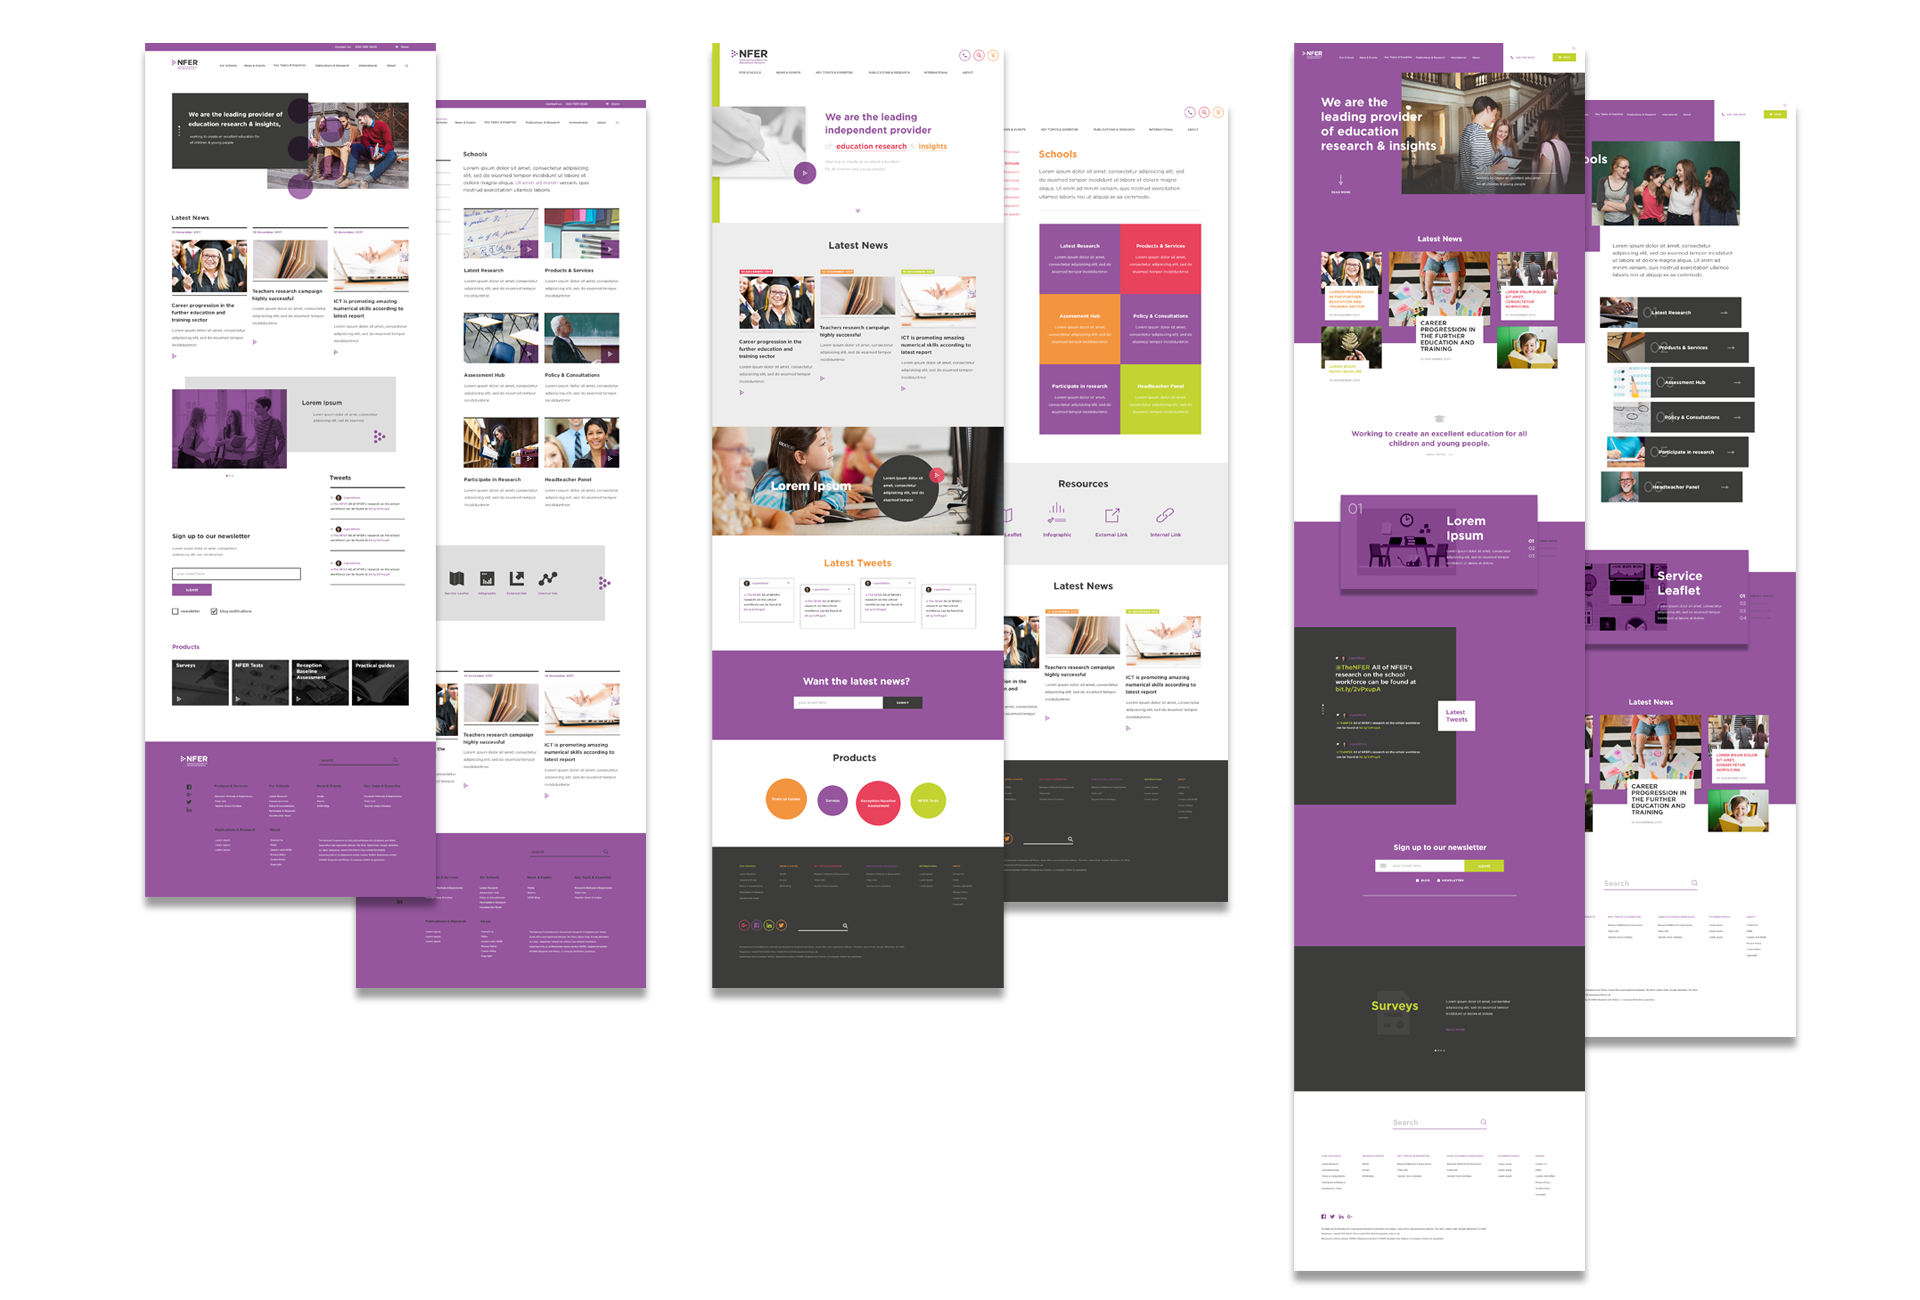 I designed a home page and content page for each of the three visual styles to present back to the client.